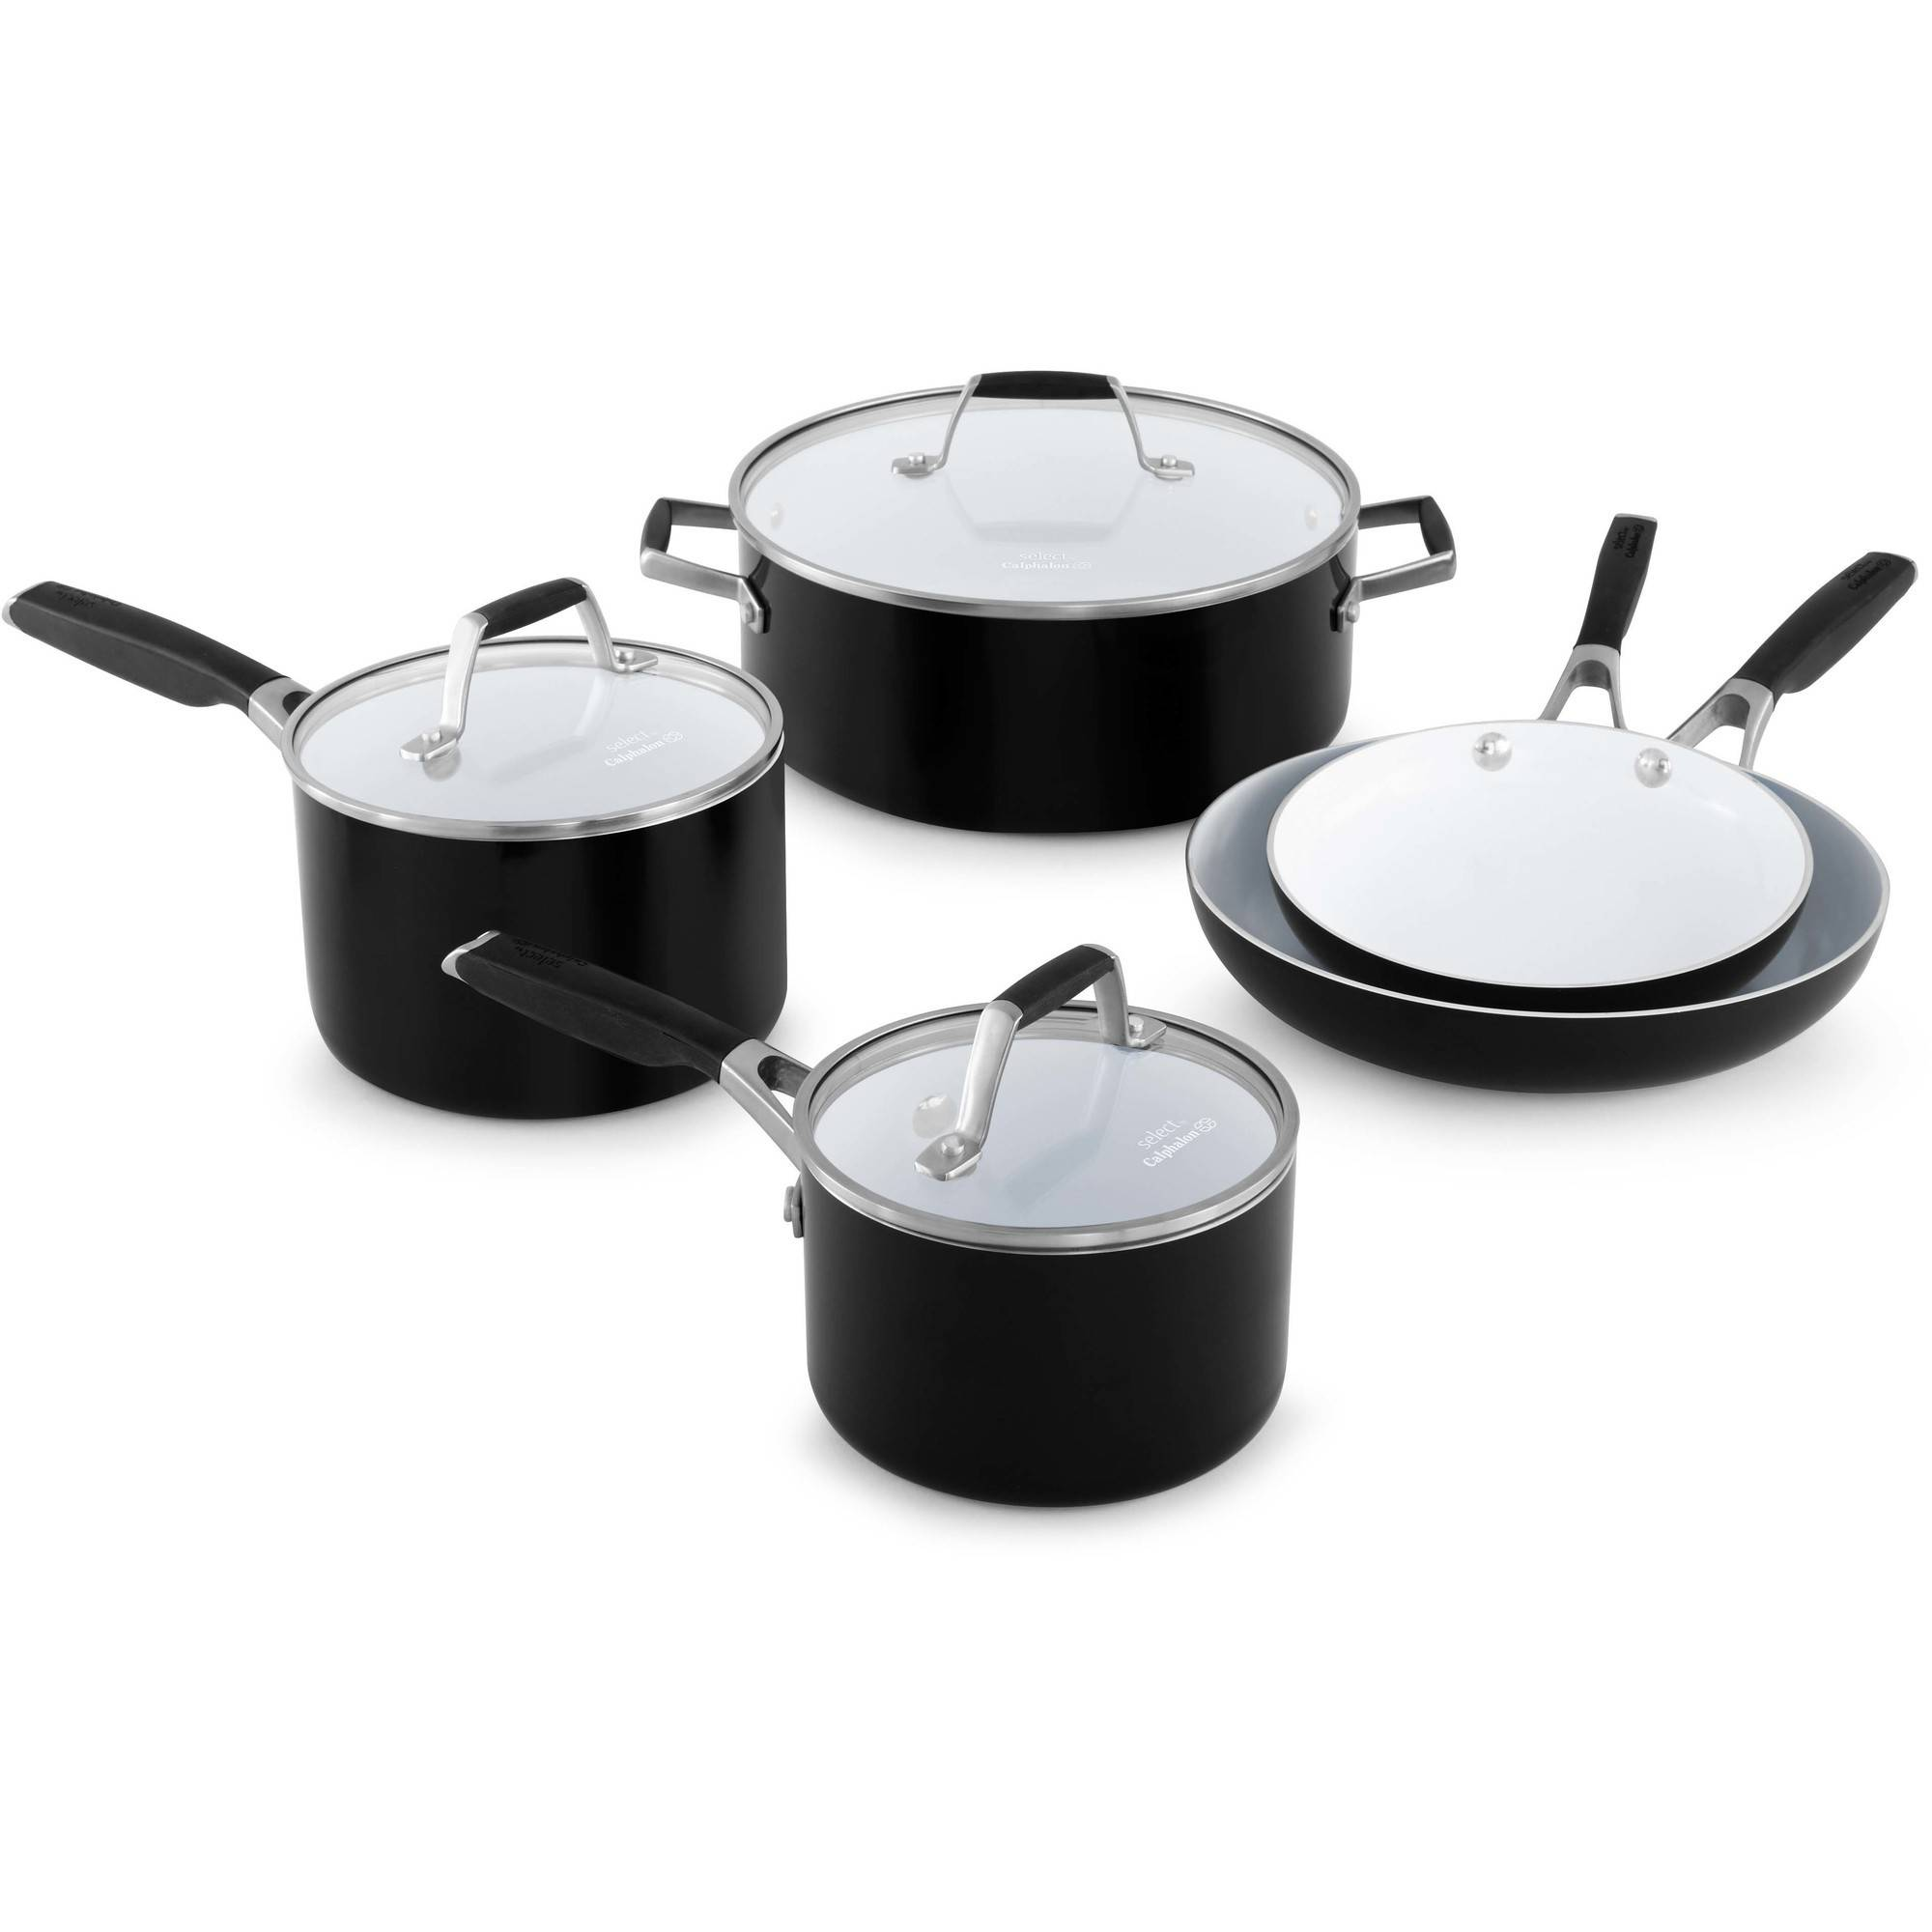 Select by Calphalon Ceramic Nonstick 8-piece Cookware Set